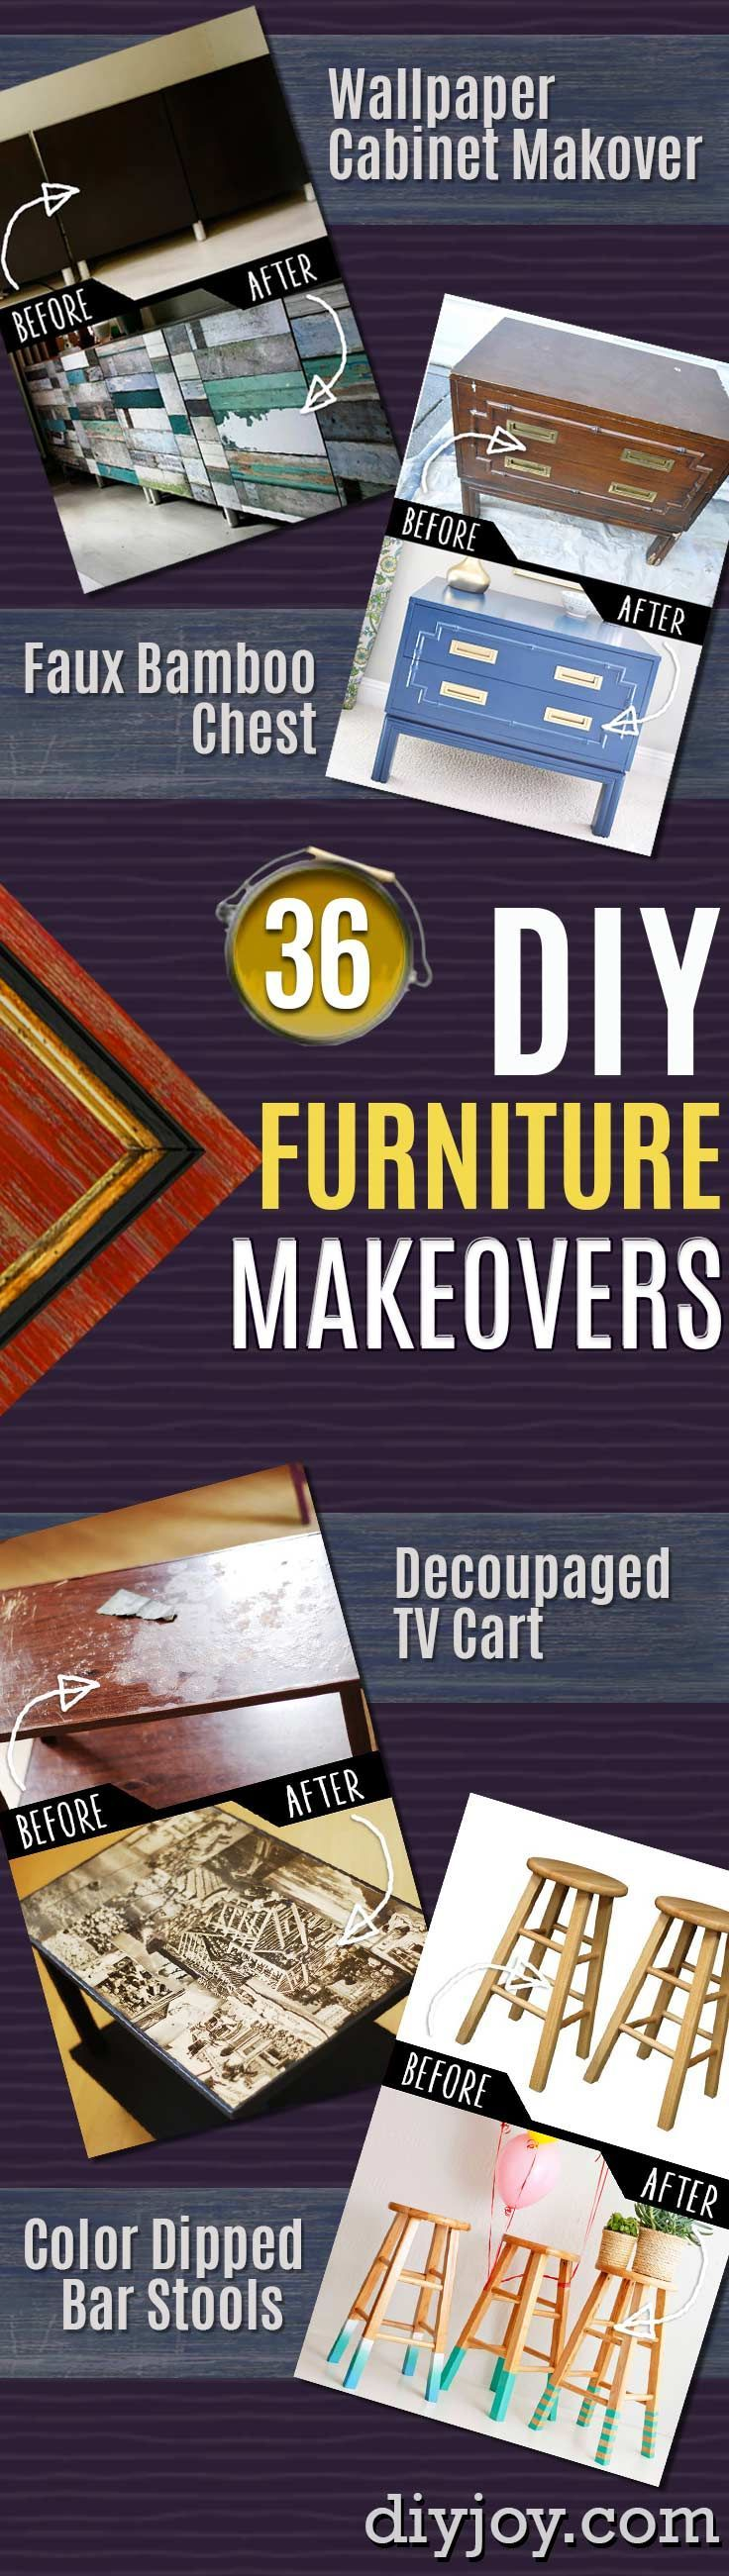 DIY Furniture Makeovers - Refurbished DIY Furniture Projects and Cool Painted Furniture Ideas for Thrift Store Furniture Makeover Projects | Best Ideas for furniture flips on Coffee Tables, Dressers and Bedroom Decor, Kitchen | Dresser, Coffee Table, End Table, Bookshelves, Chairs http://diyjoy.com/diy-furniture-makeovers